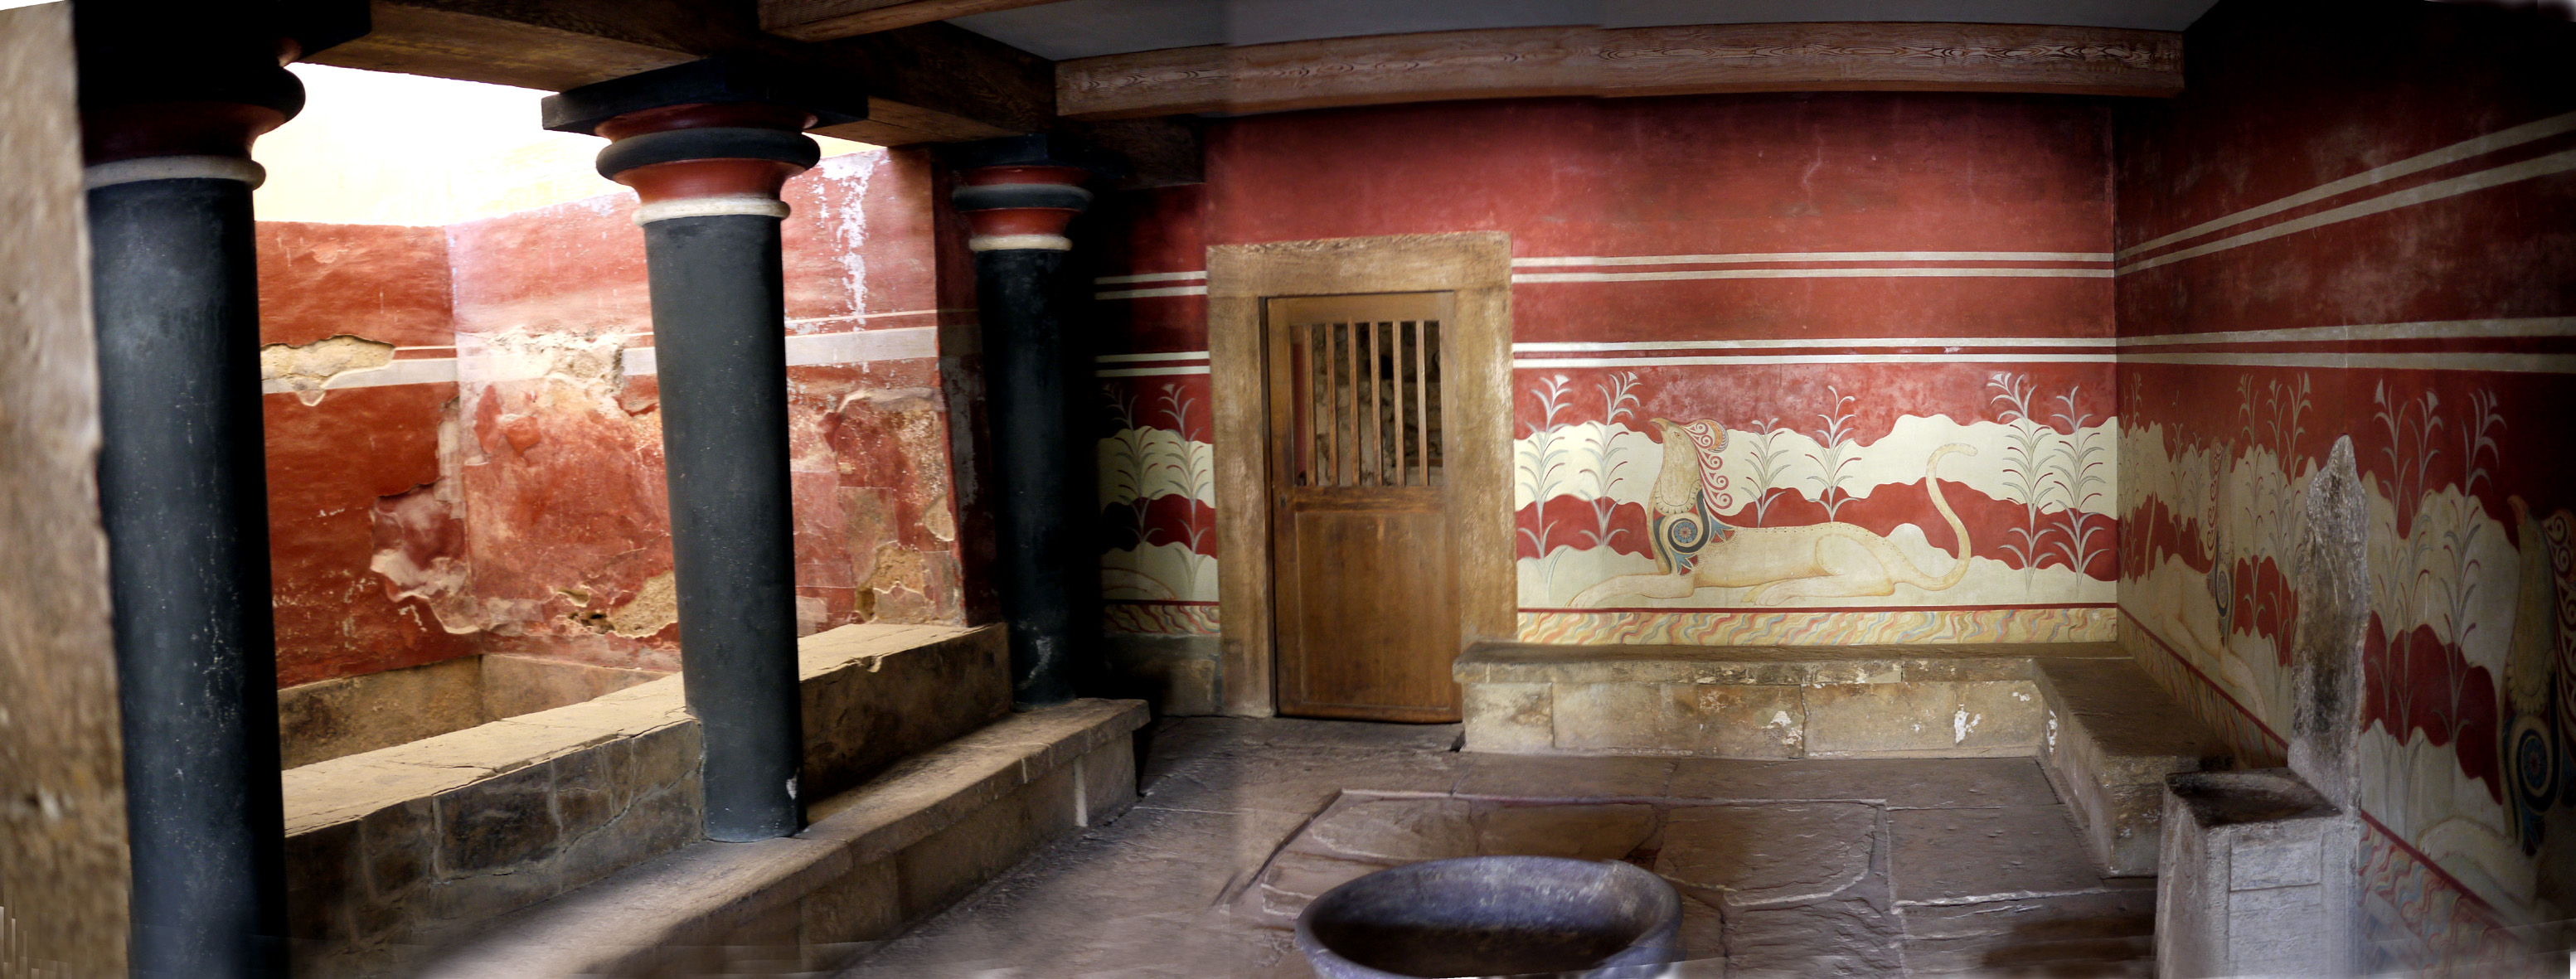 Knossos: Throne room and Lustral basin